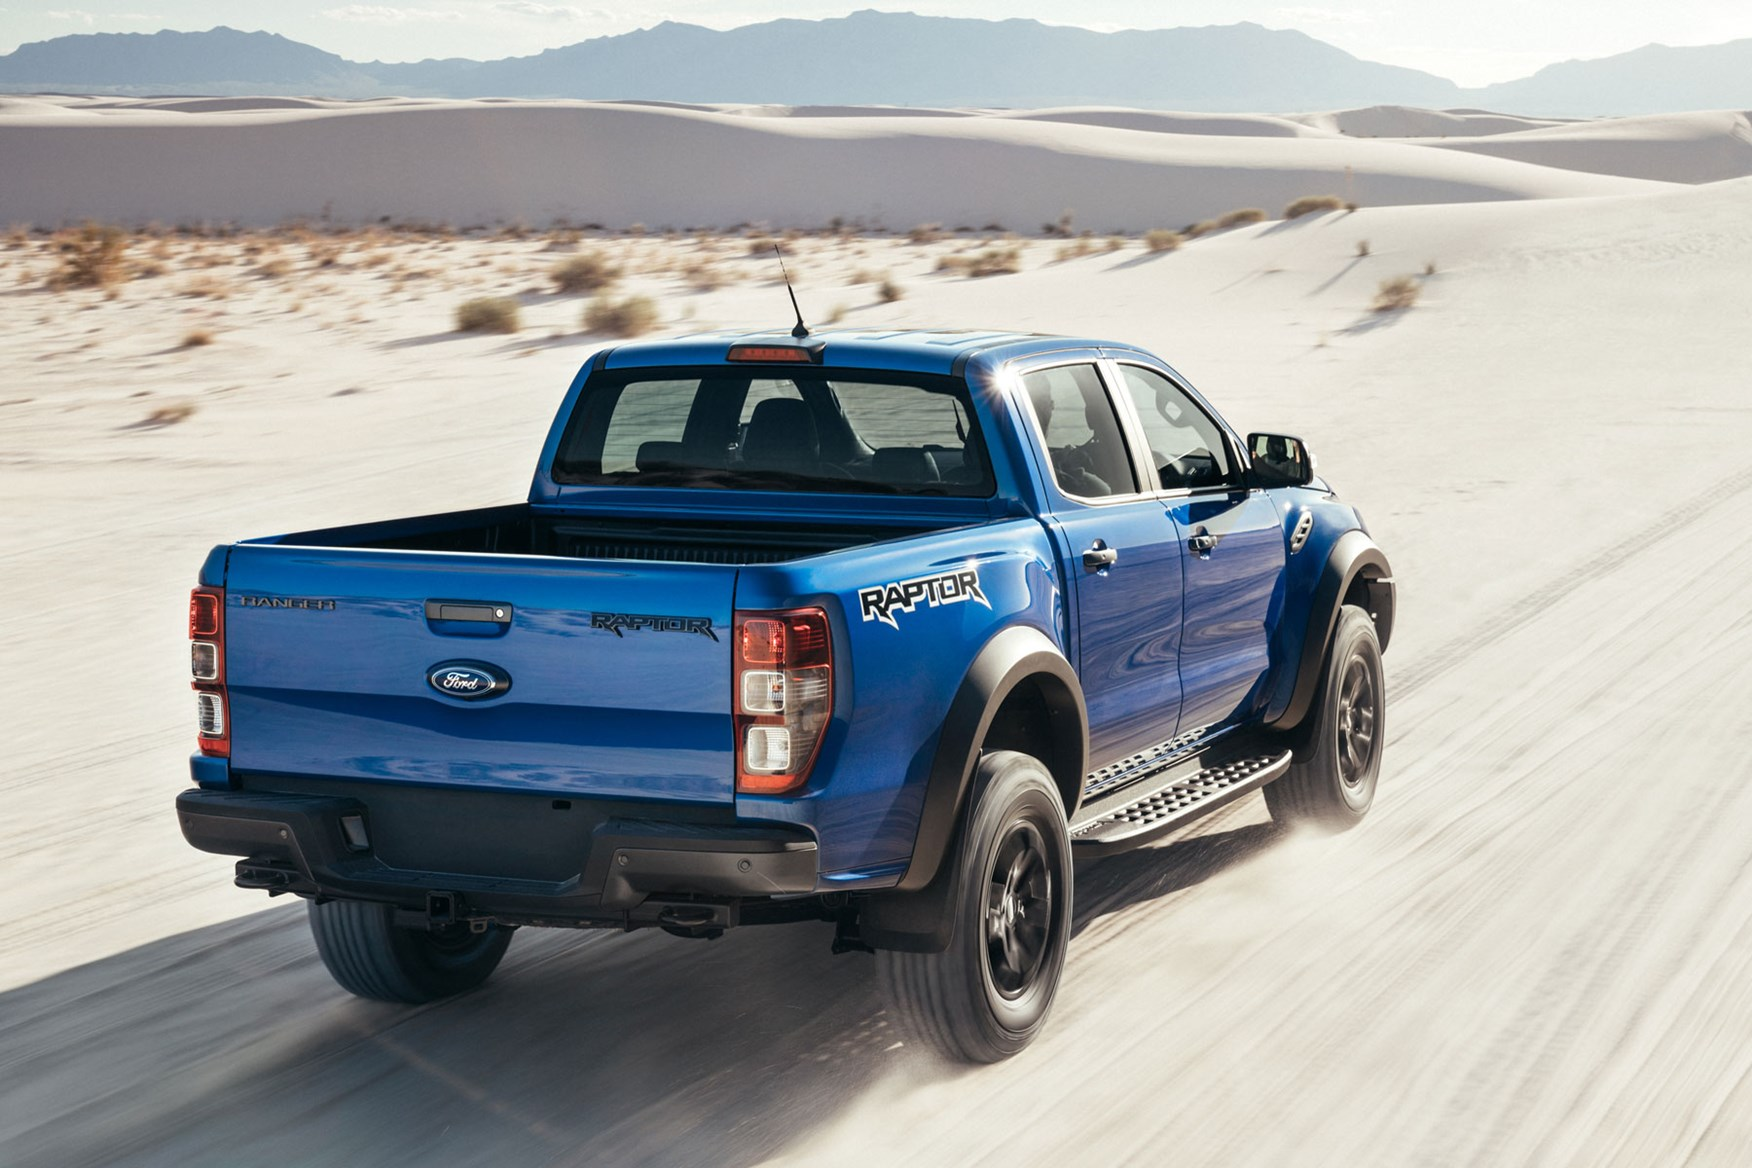 Ford Ranger Raptor - full details, pictures, pricing and ...